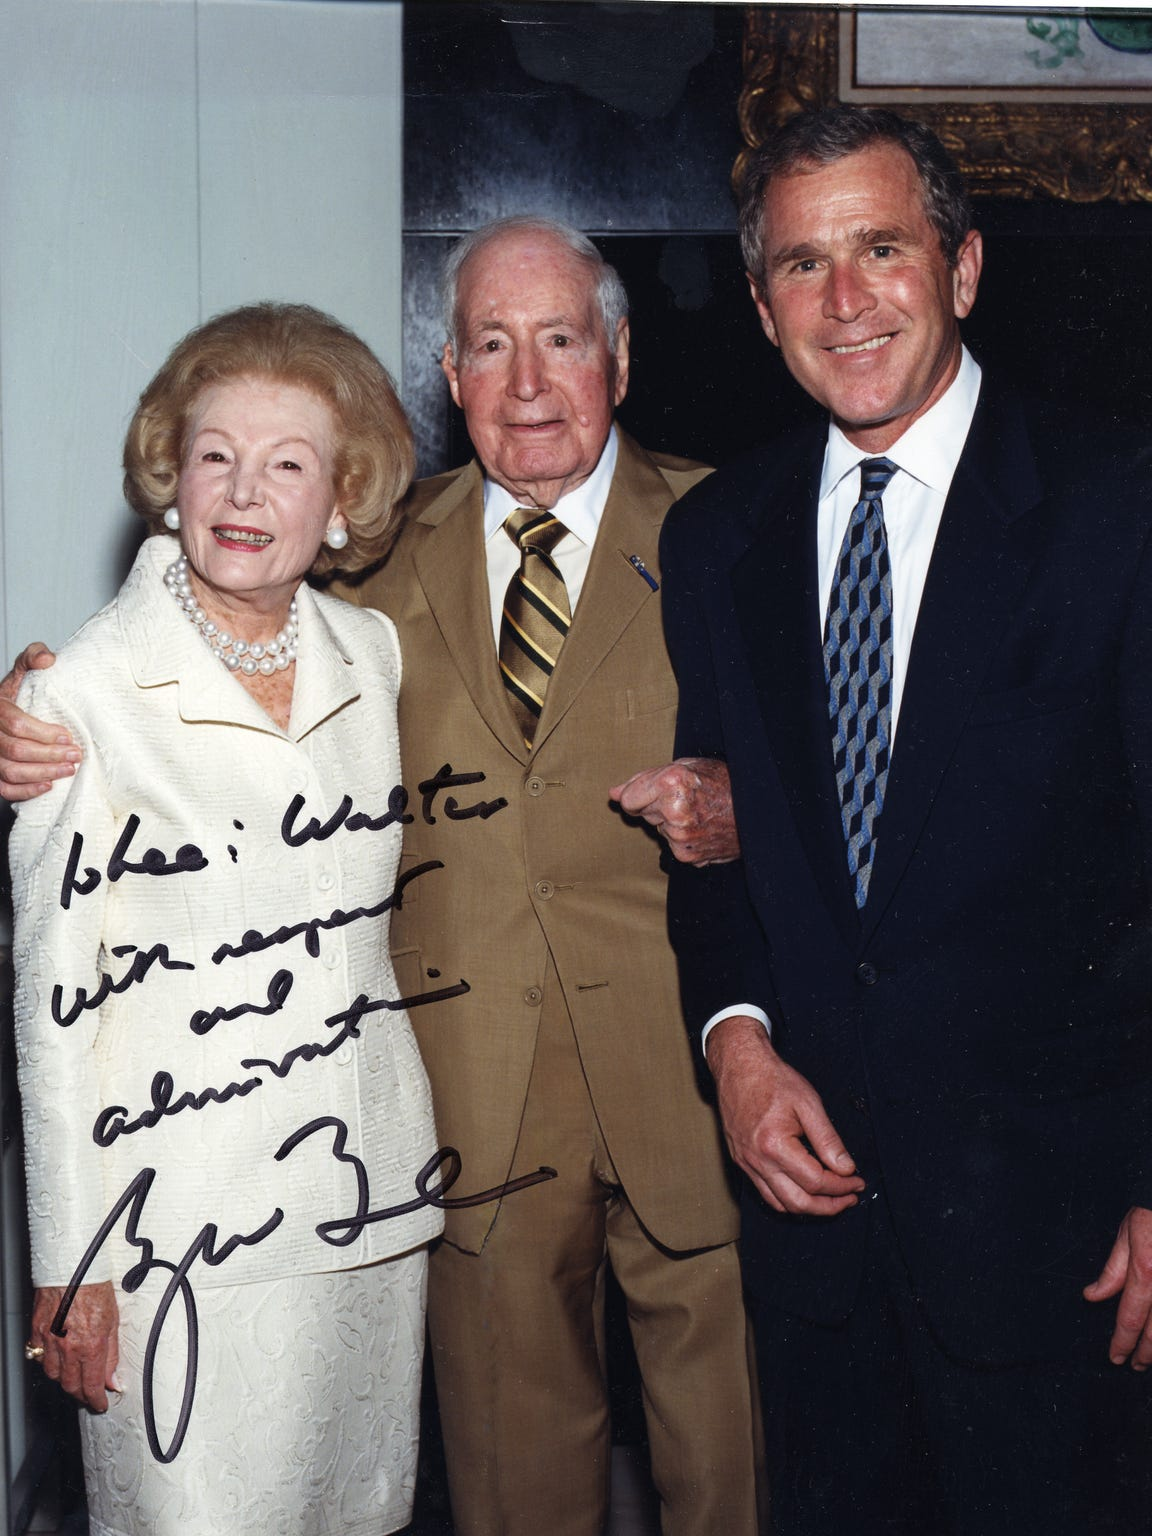 Walter And Leonore Annenberg with President George